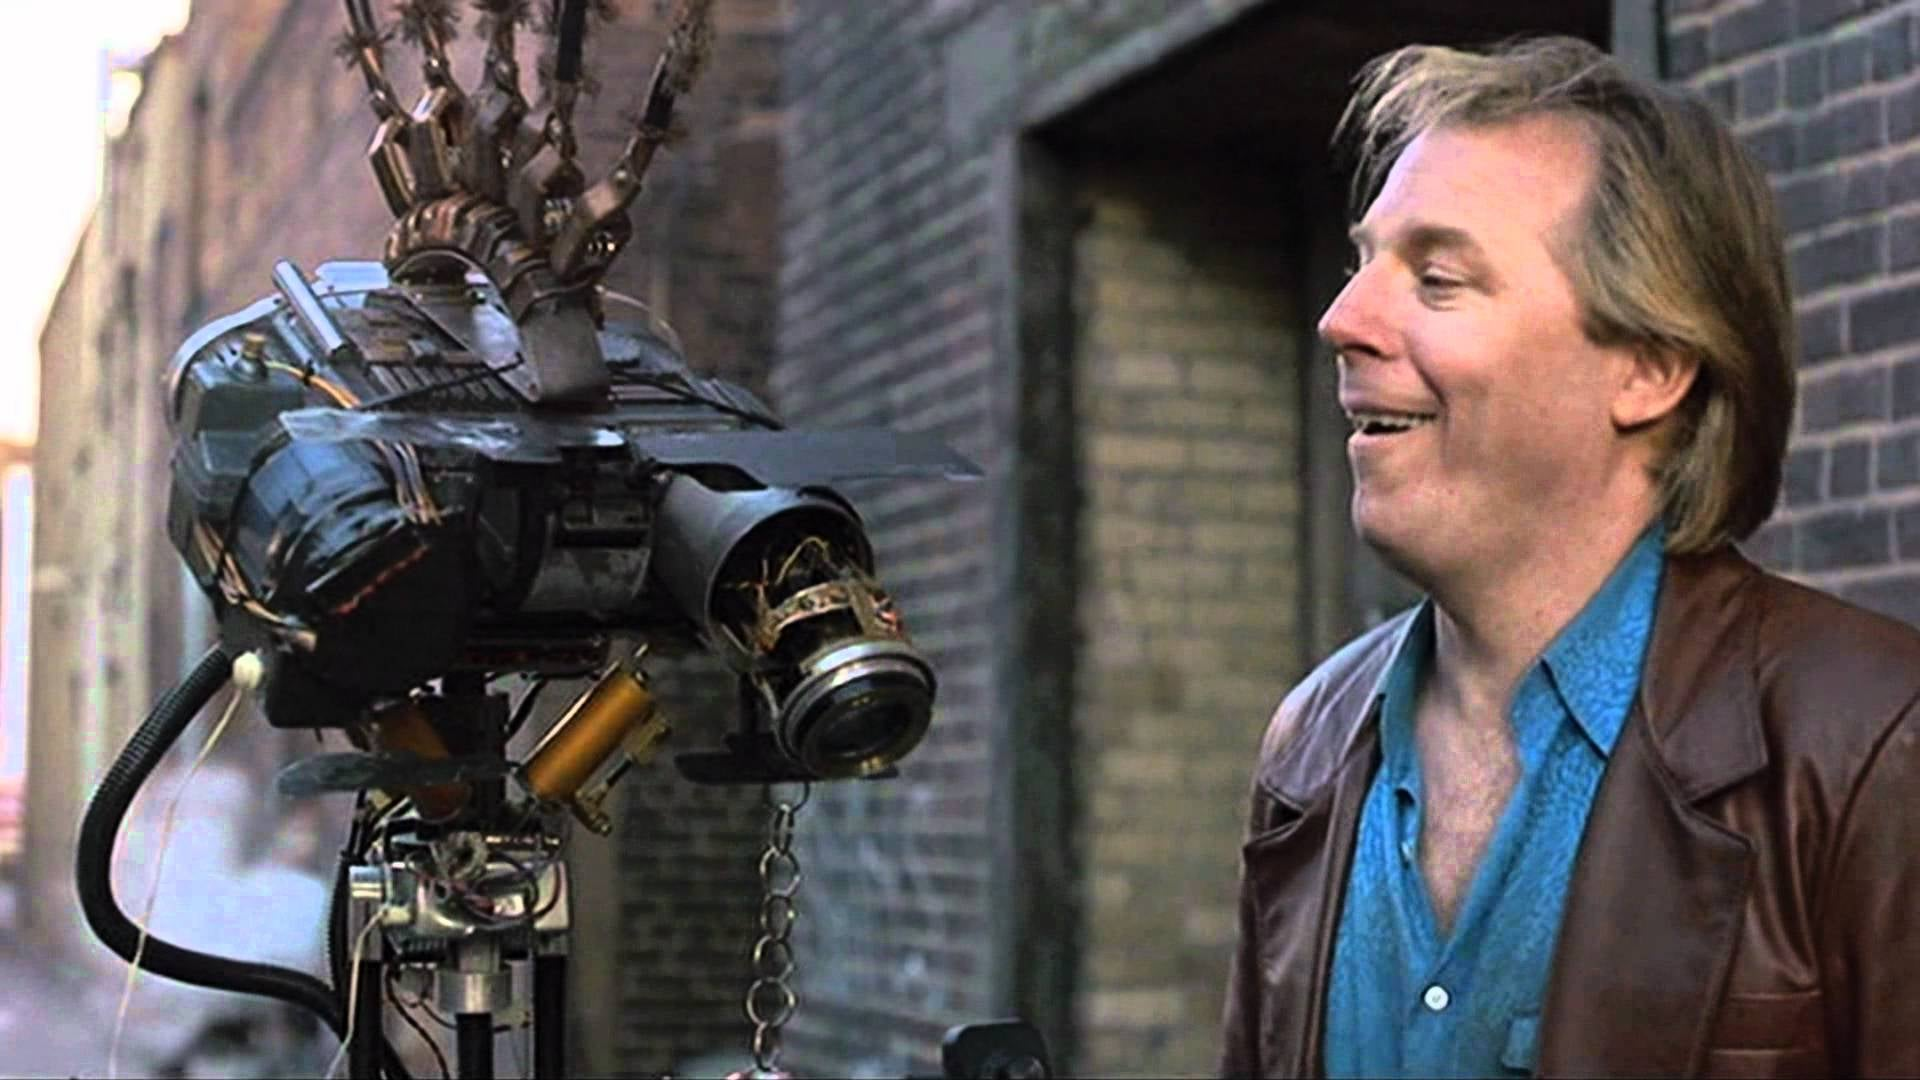 16 things you probably never knew about the short circuit moviesJohnny 5 Mohawk Johnnyfive 3 #9